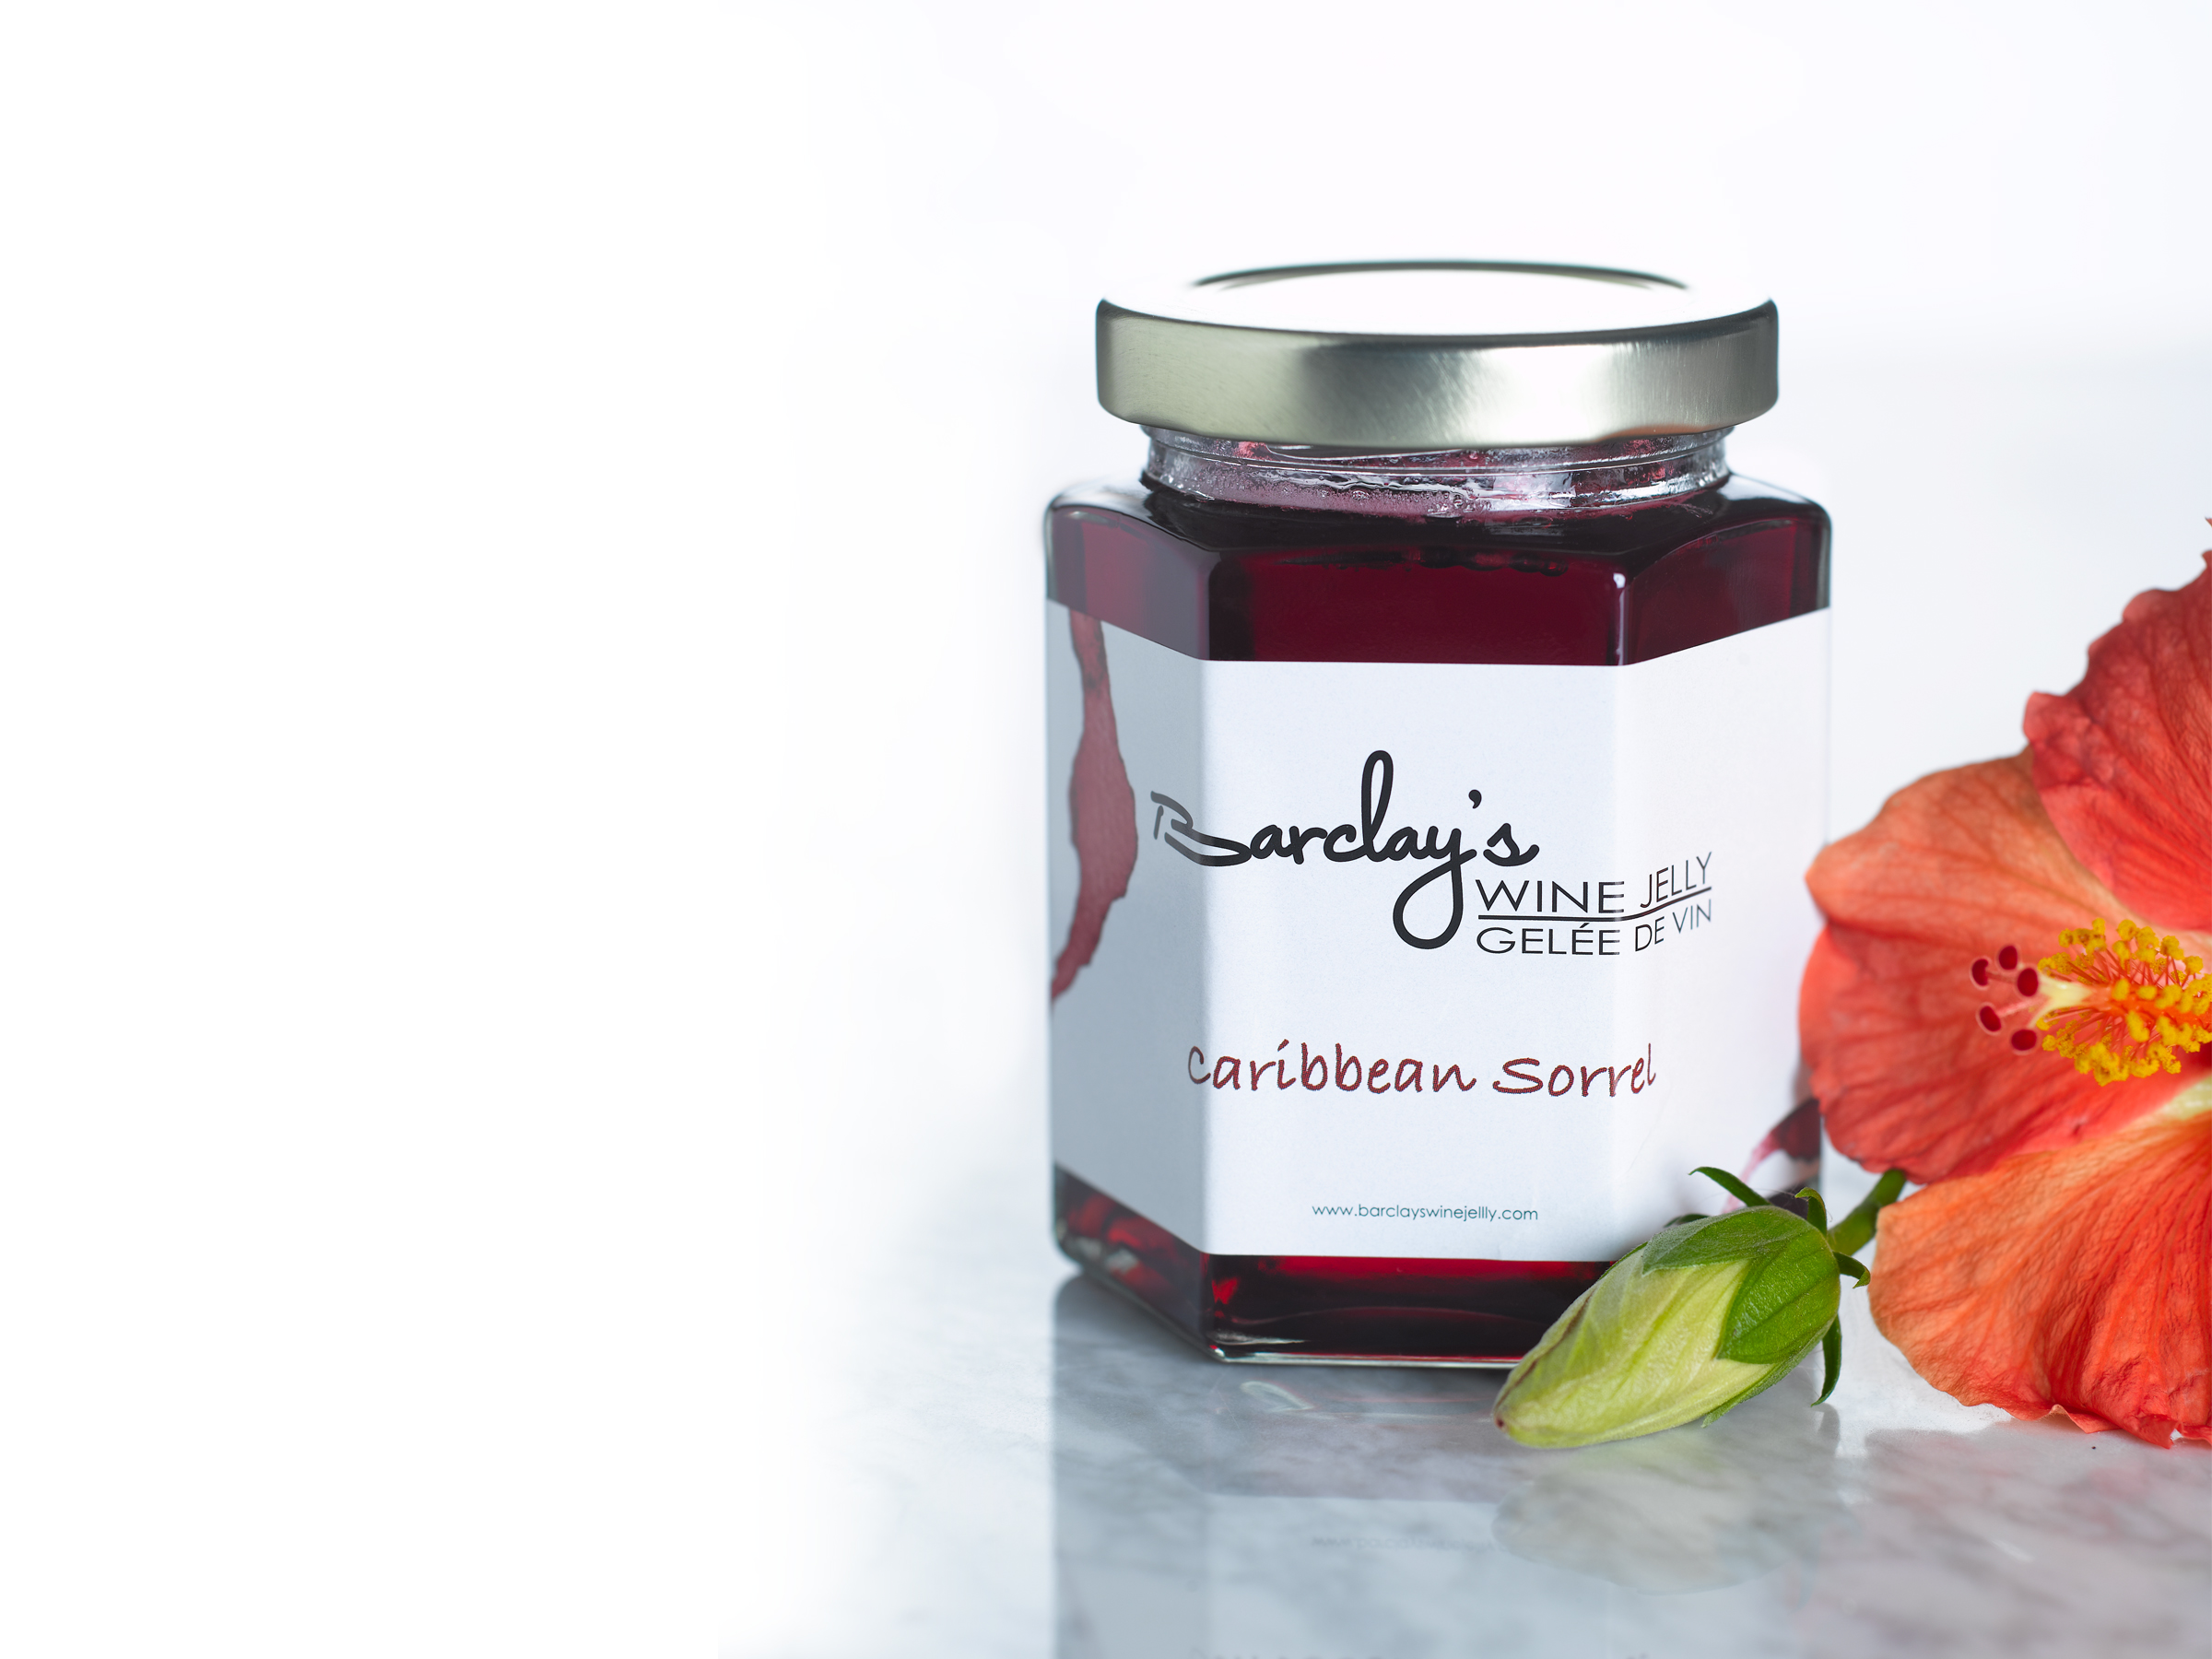 Jar of Barclays Caribbean Sorrel Wine Jelly